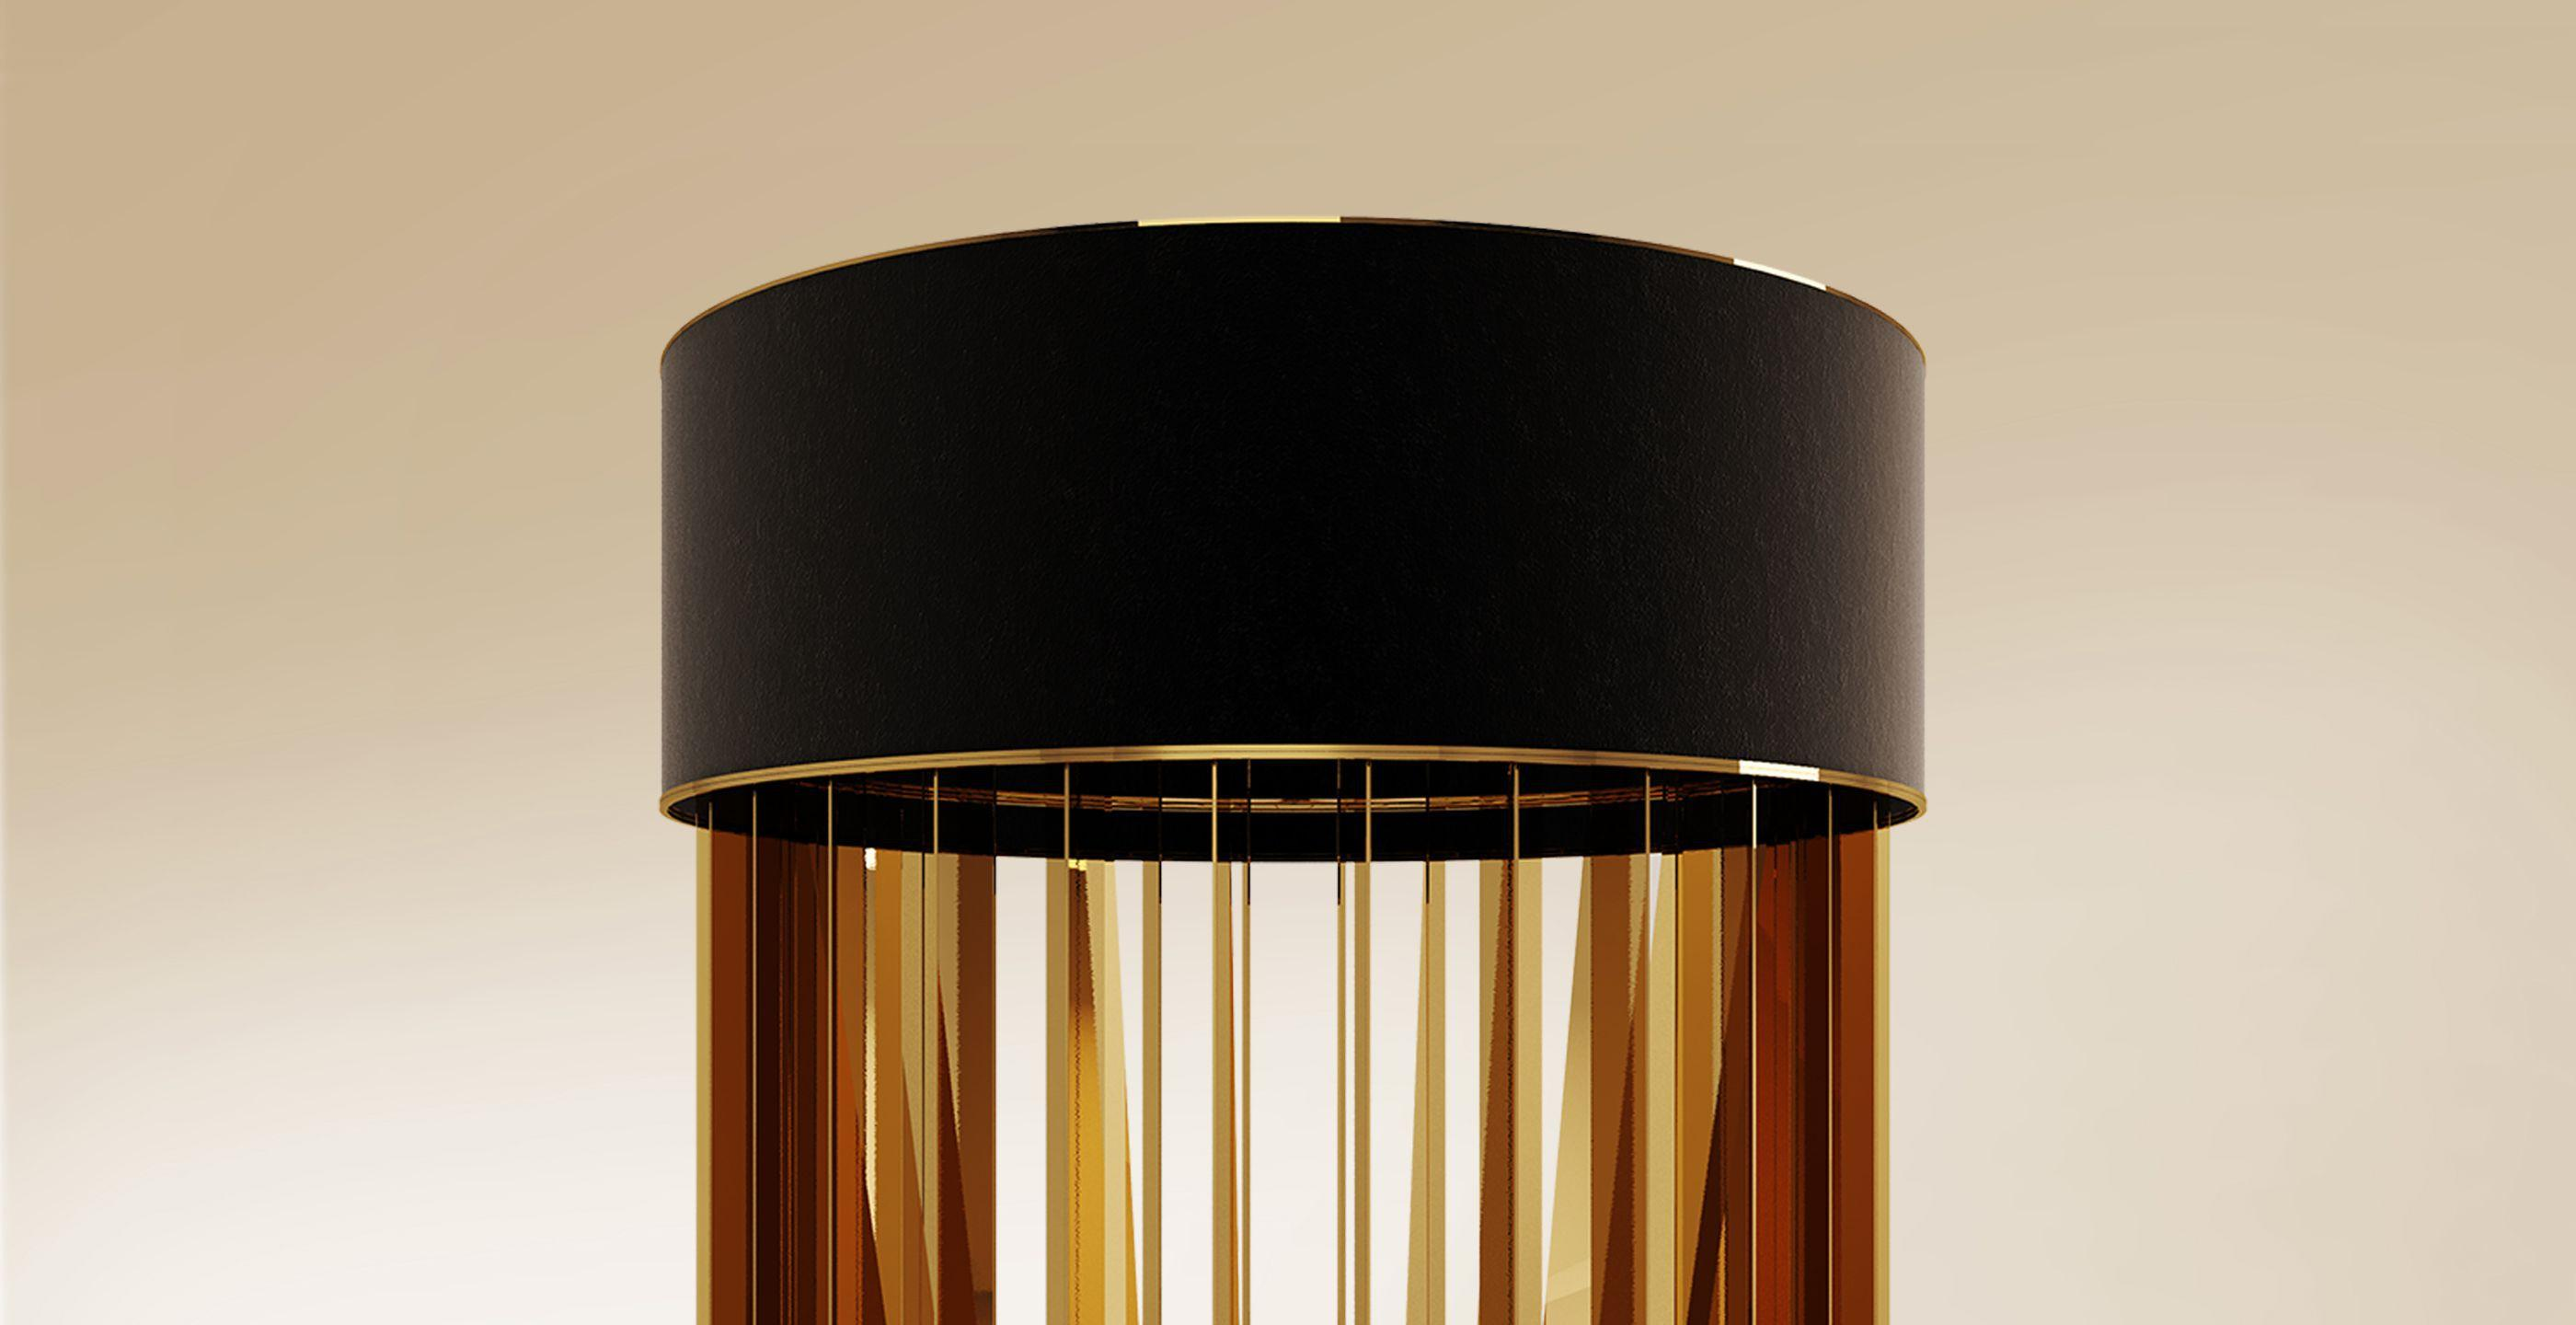 Dubai Table Lamp